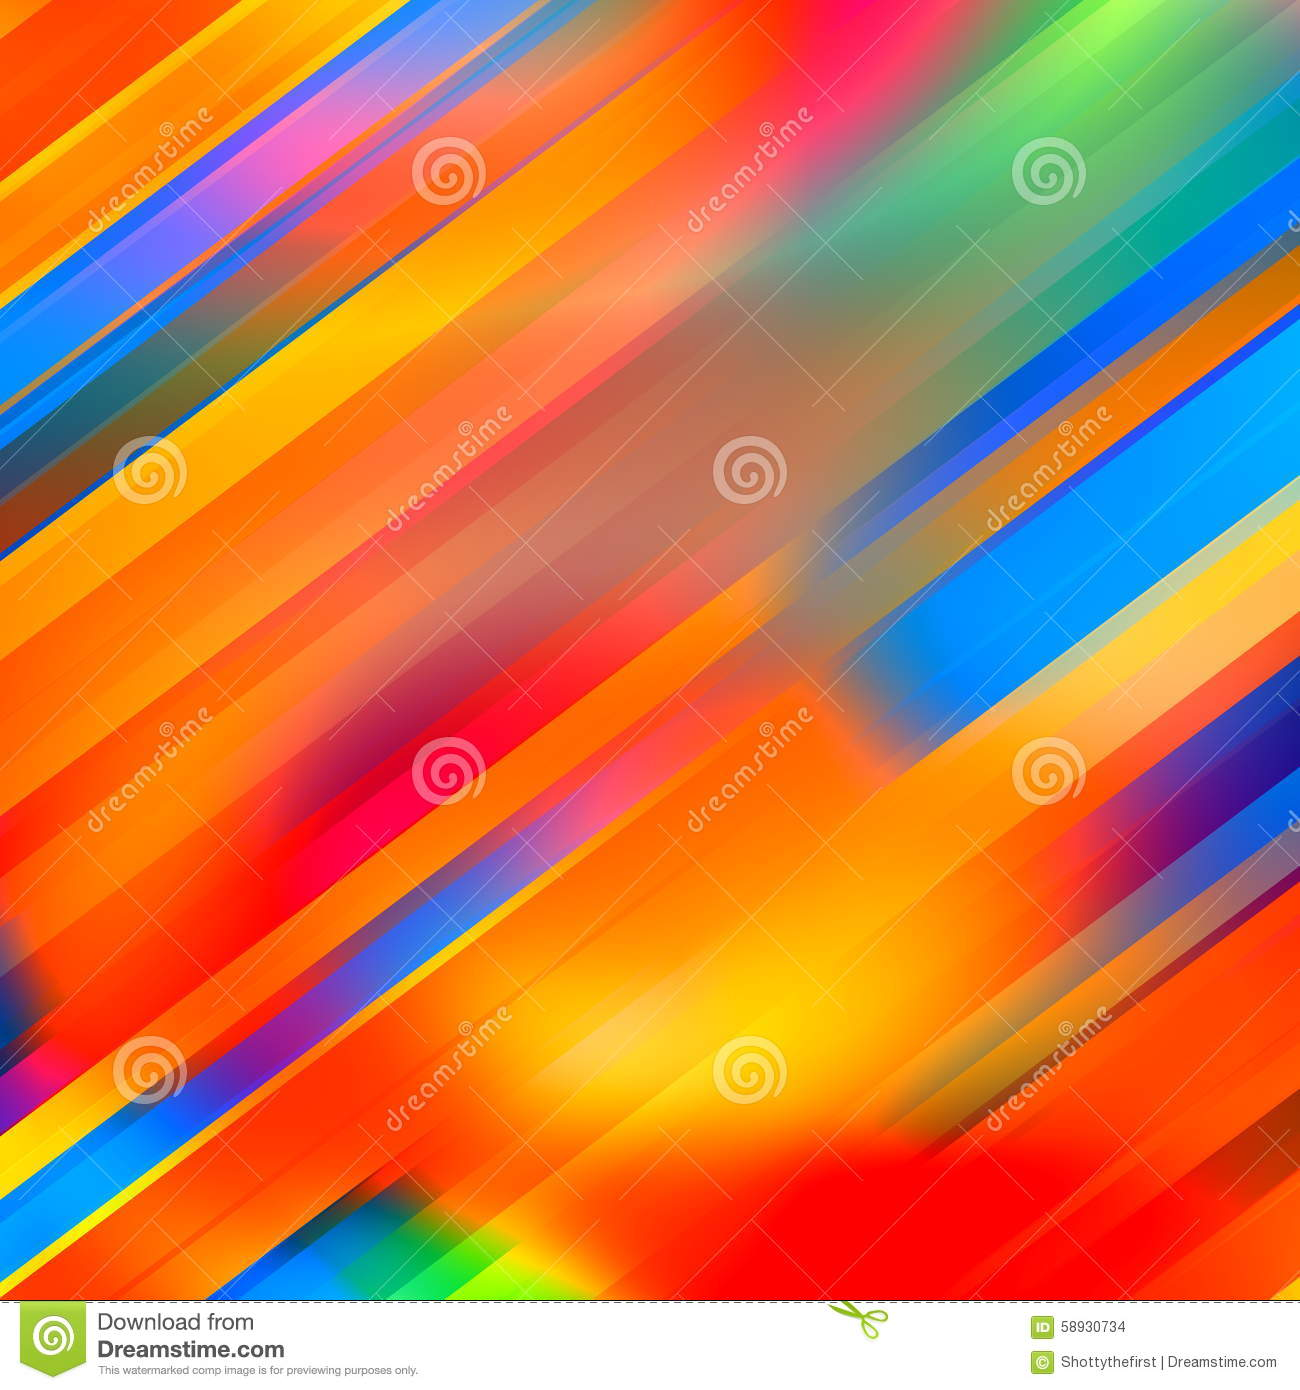 download wallpaper colorful rays - photo #14